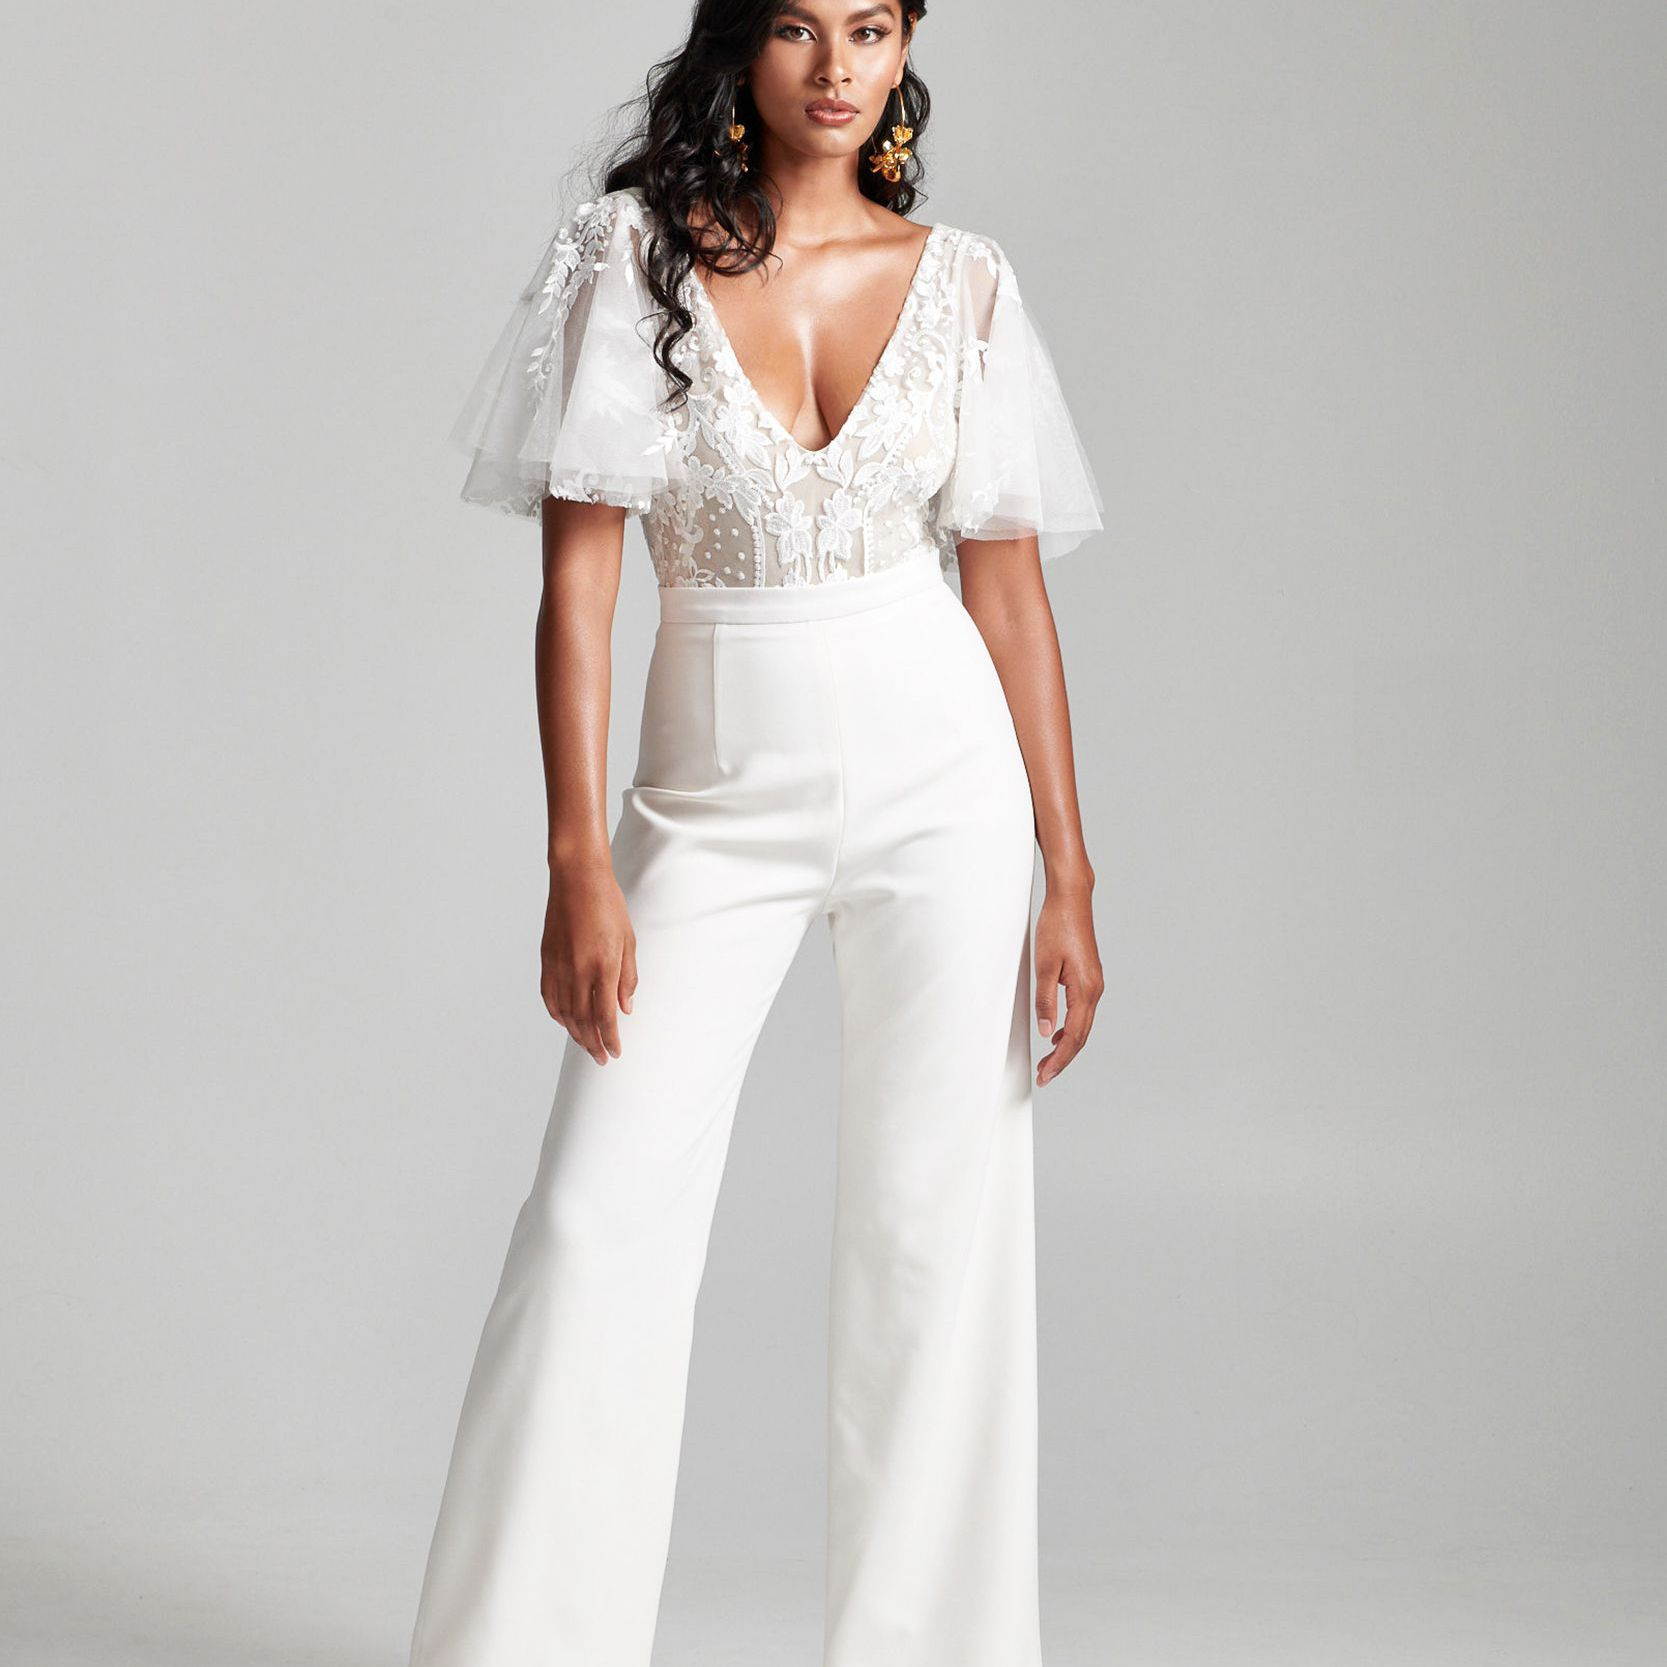 Model in lace v-neck top with flutter sleeves and wide leg high-waisted pants